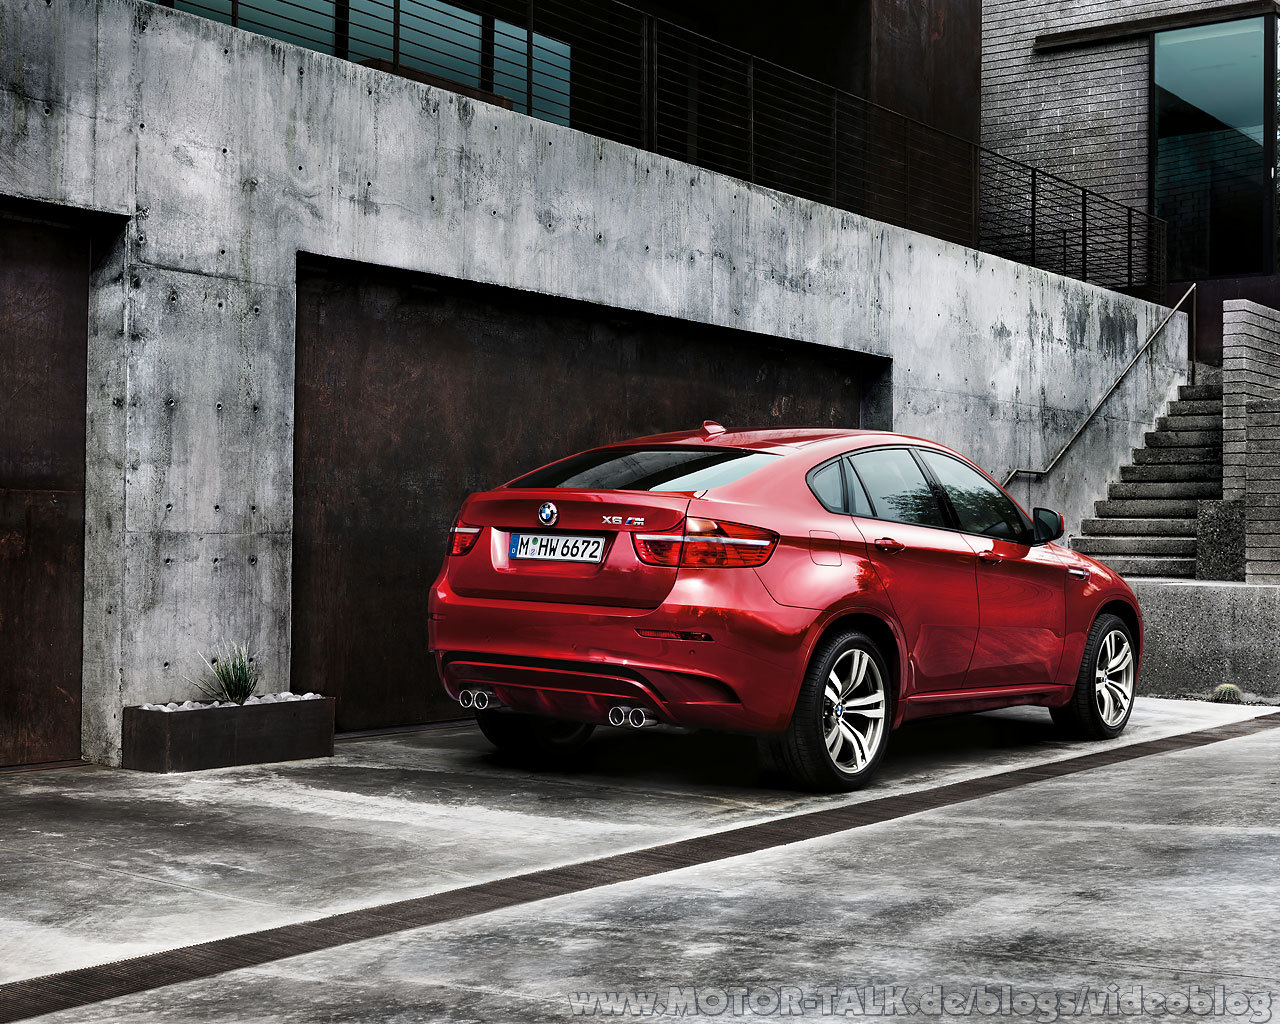 Bmw X6 Wallpaper Photos Free 258 Wallpaper Walldiskpaper